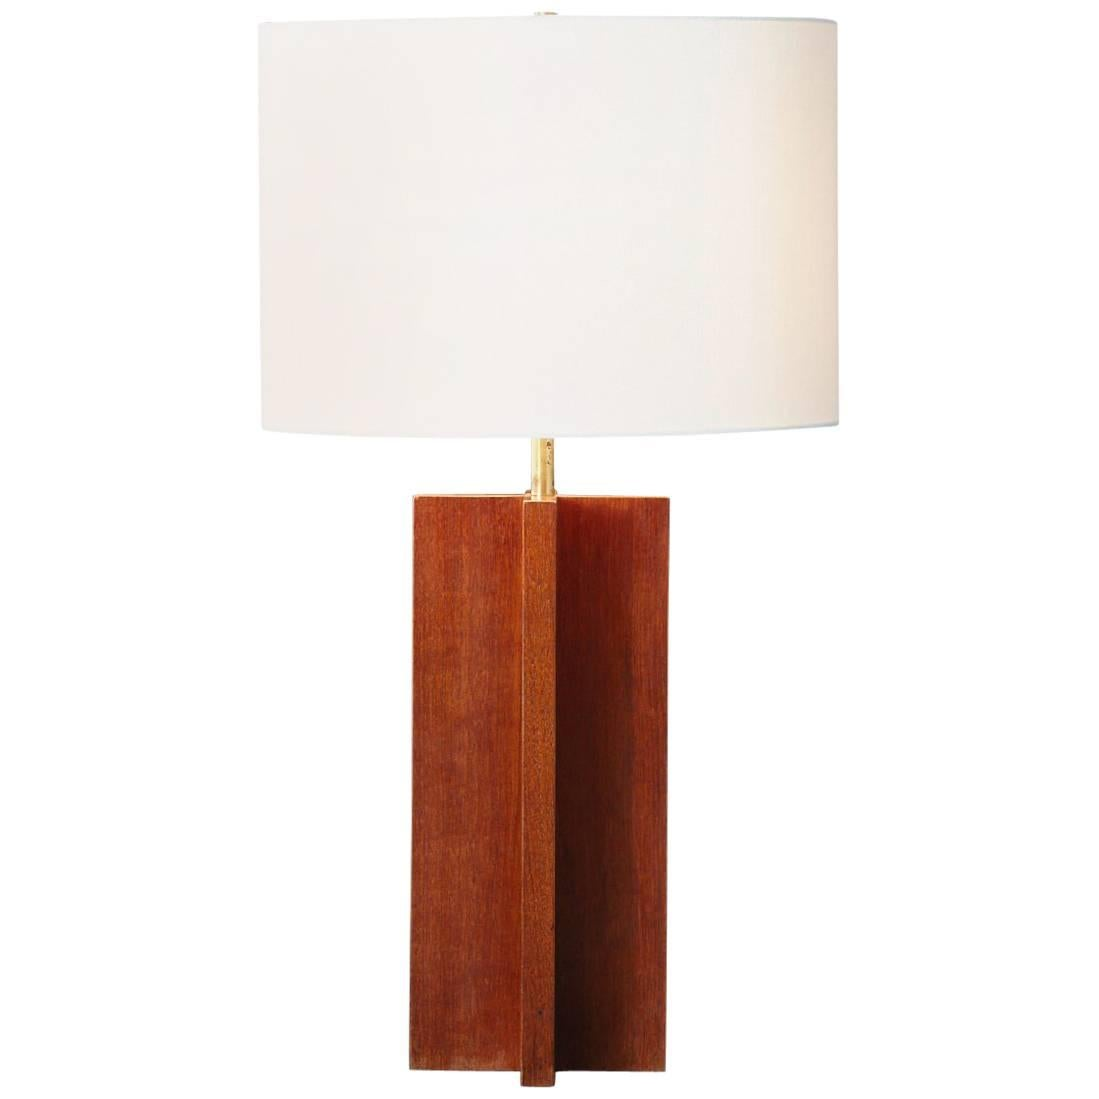 Mid Century Modern Solid Oak Table Lamp, 1960s